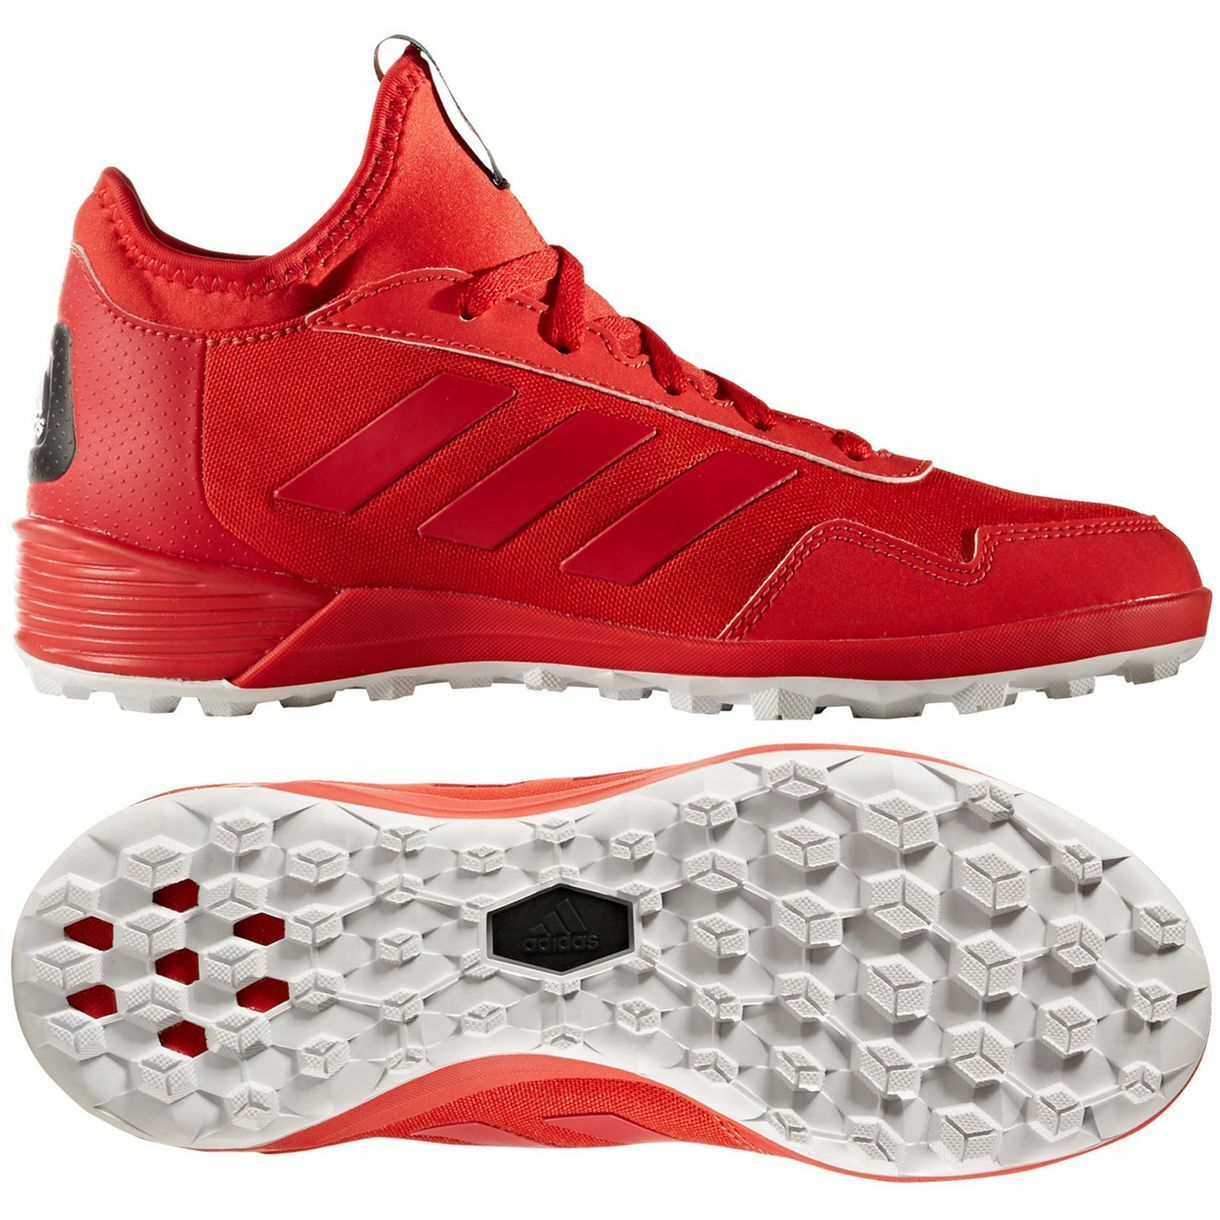 Adidas Ace 17.2 Tango TF Turf 2017 Soccer Shoes Red / White Kids - Youth